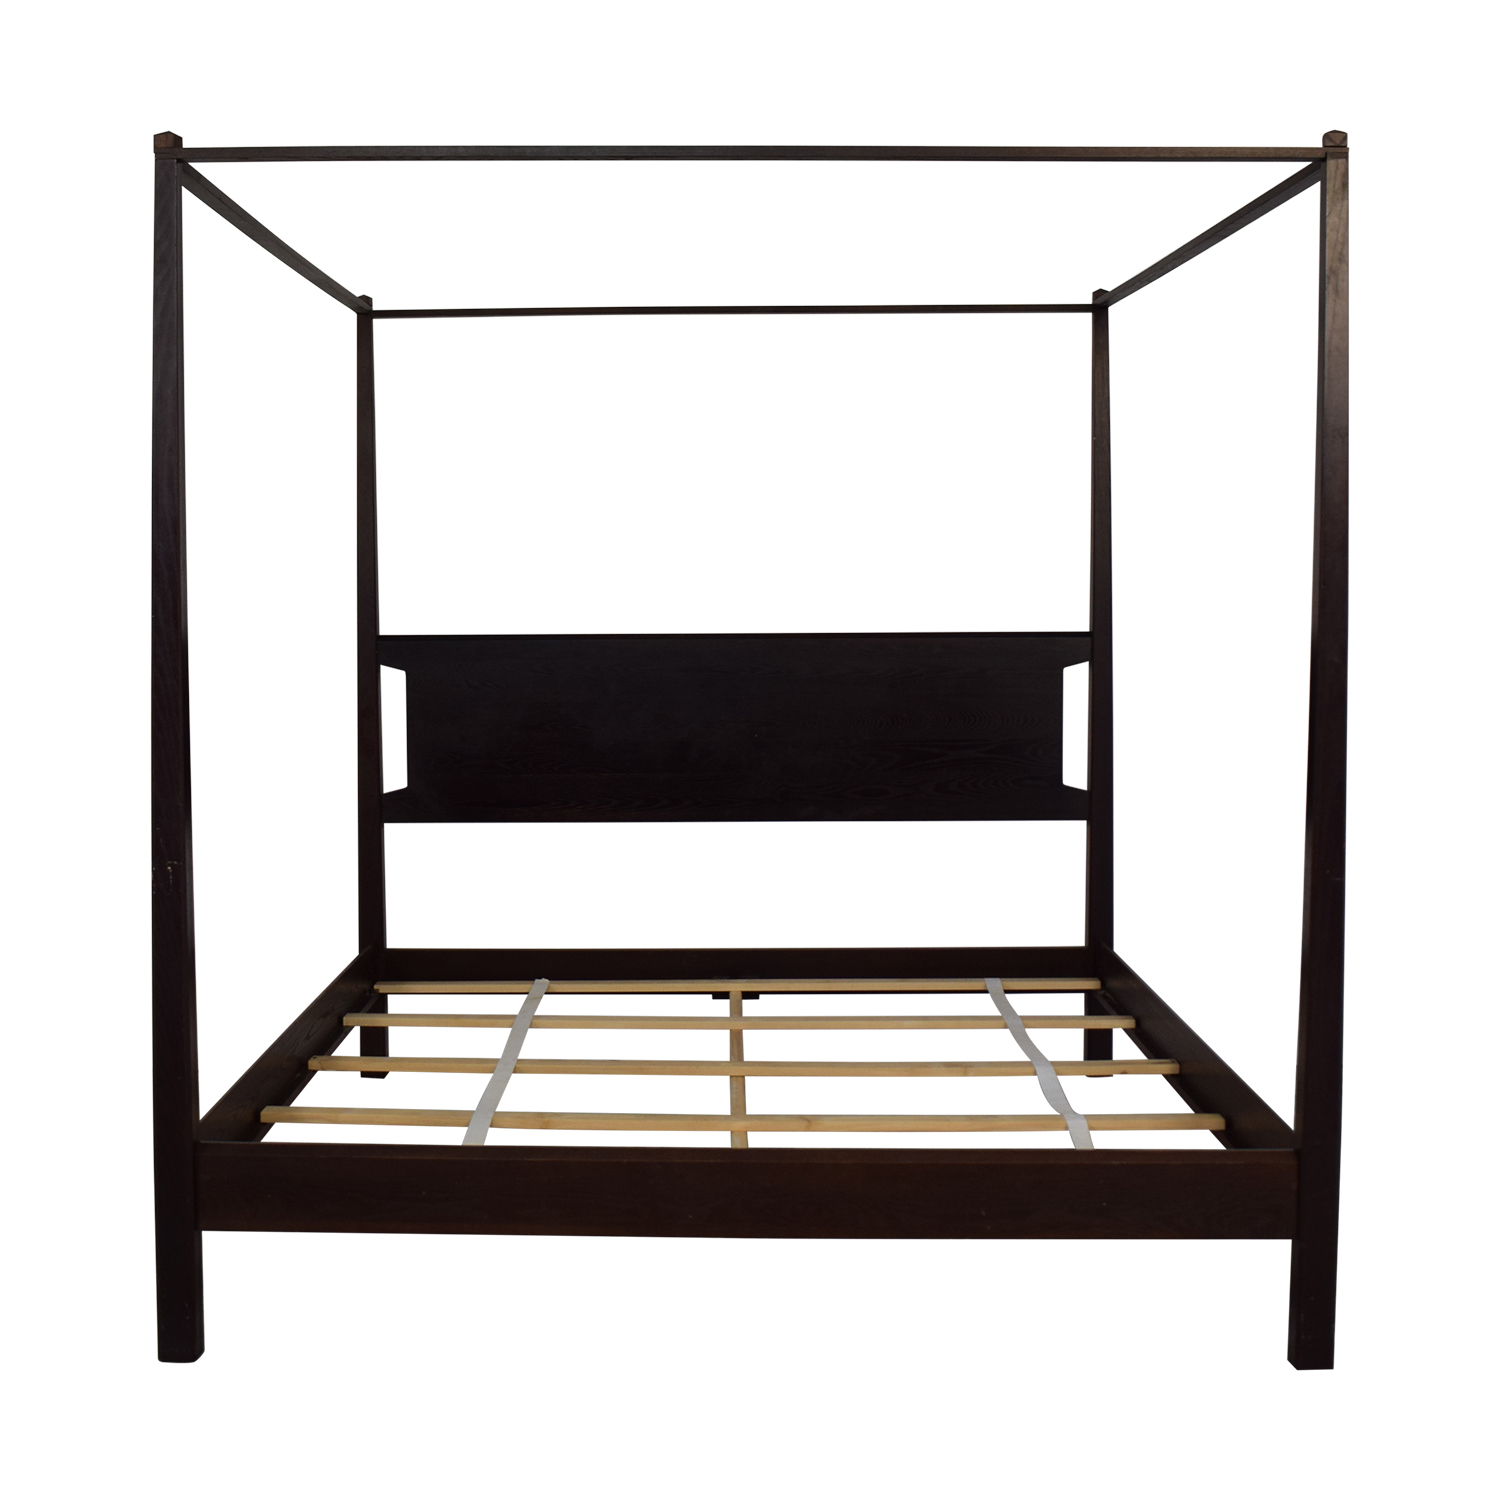 Bloomingdale's Bloomingdale's Canopy King Size Bed with Headboard used